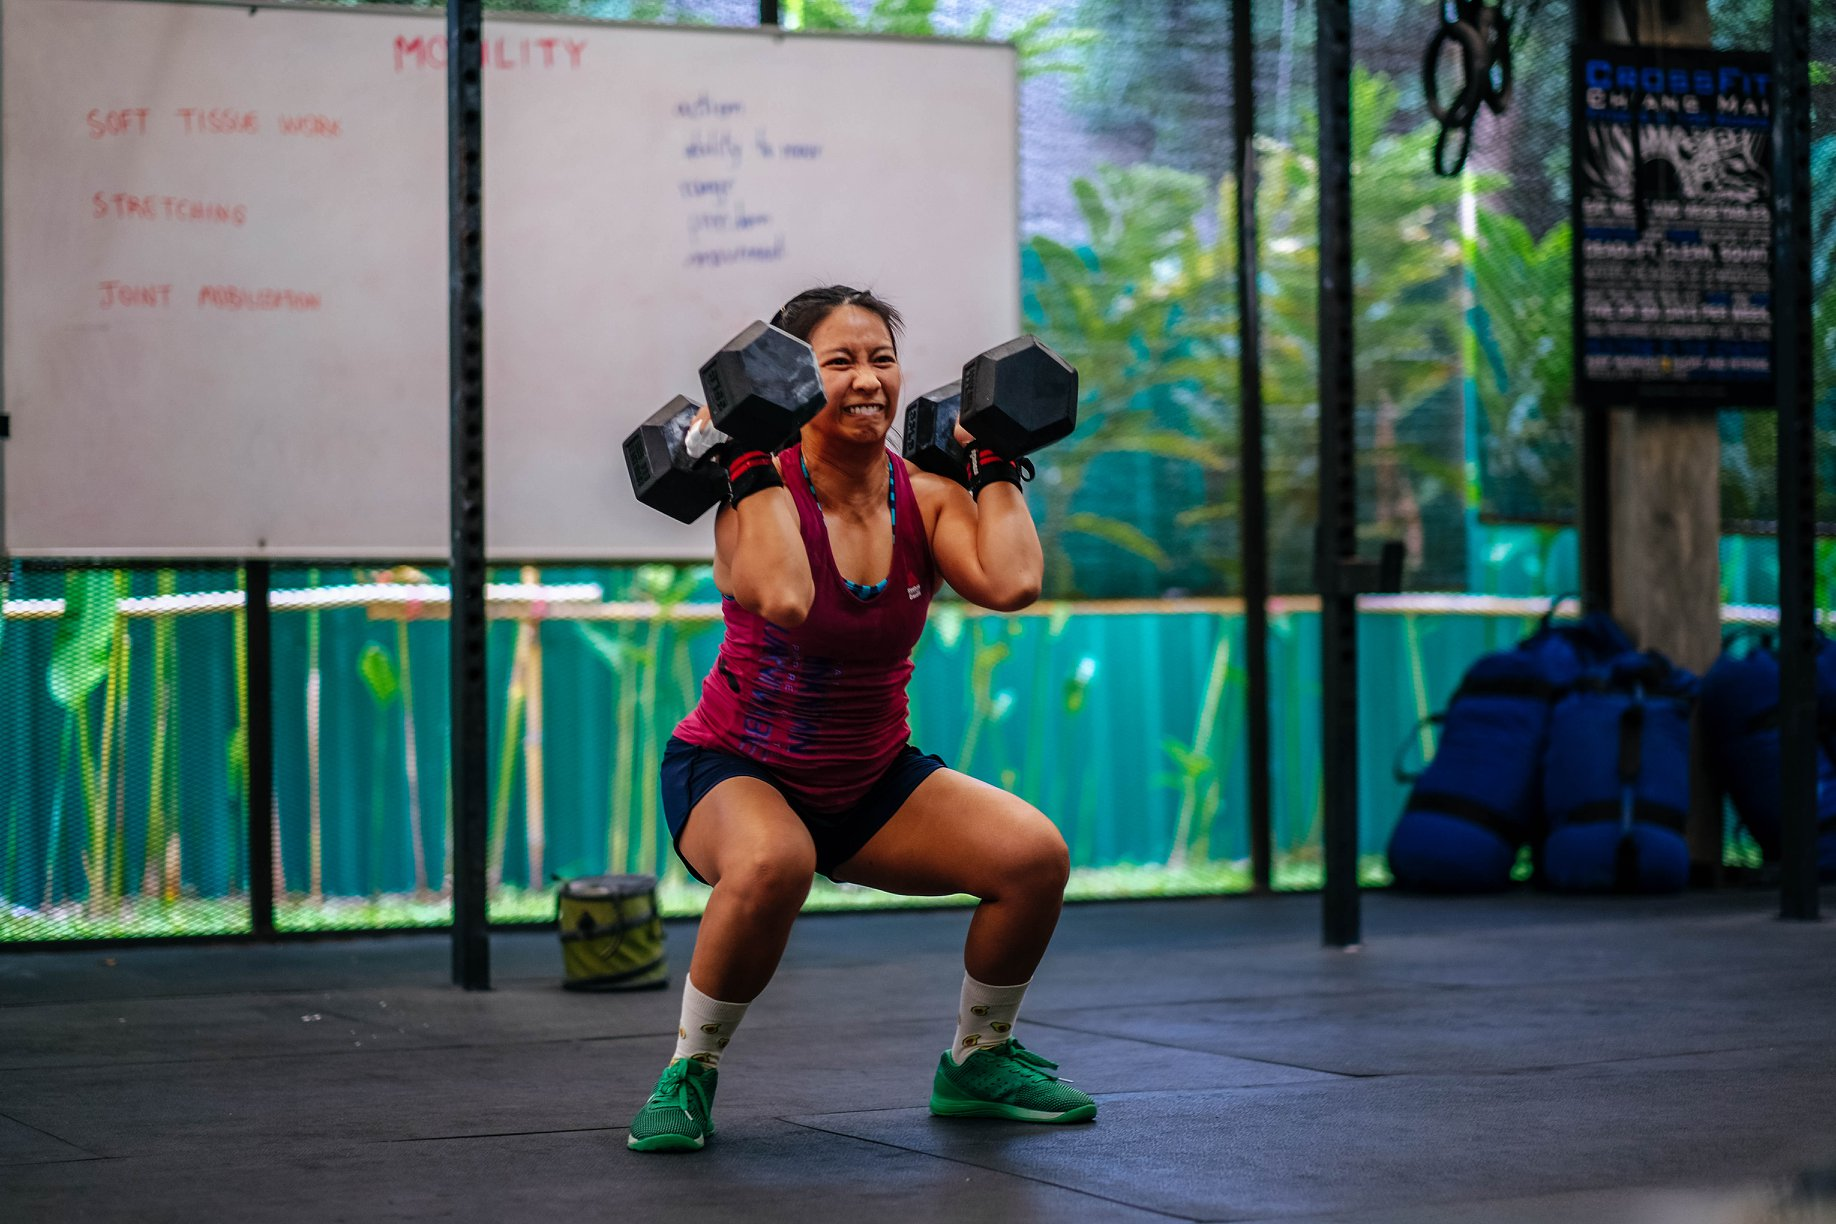 What if Training is Supposed to be Hard?